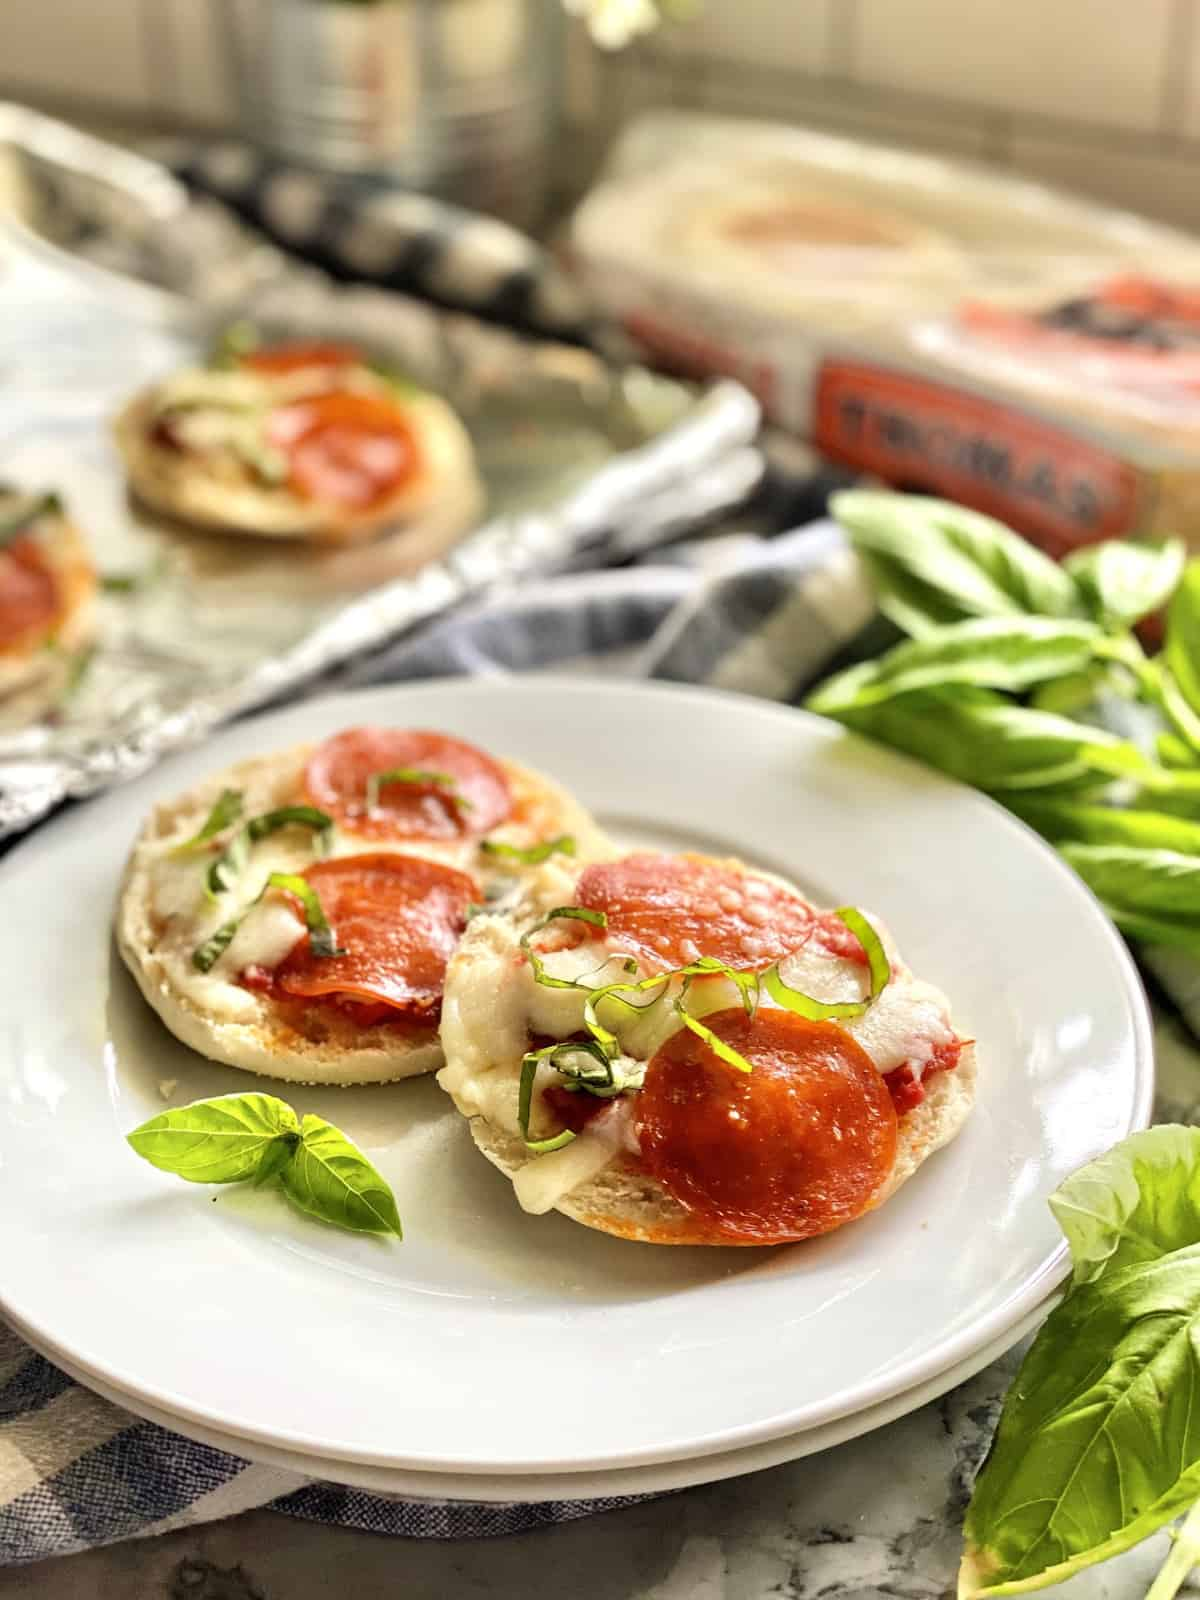 Toaster Oven English Muffin Pizzas Lunch or Snack